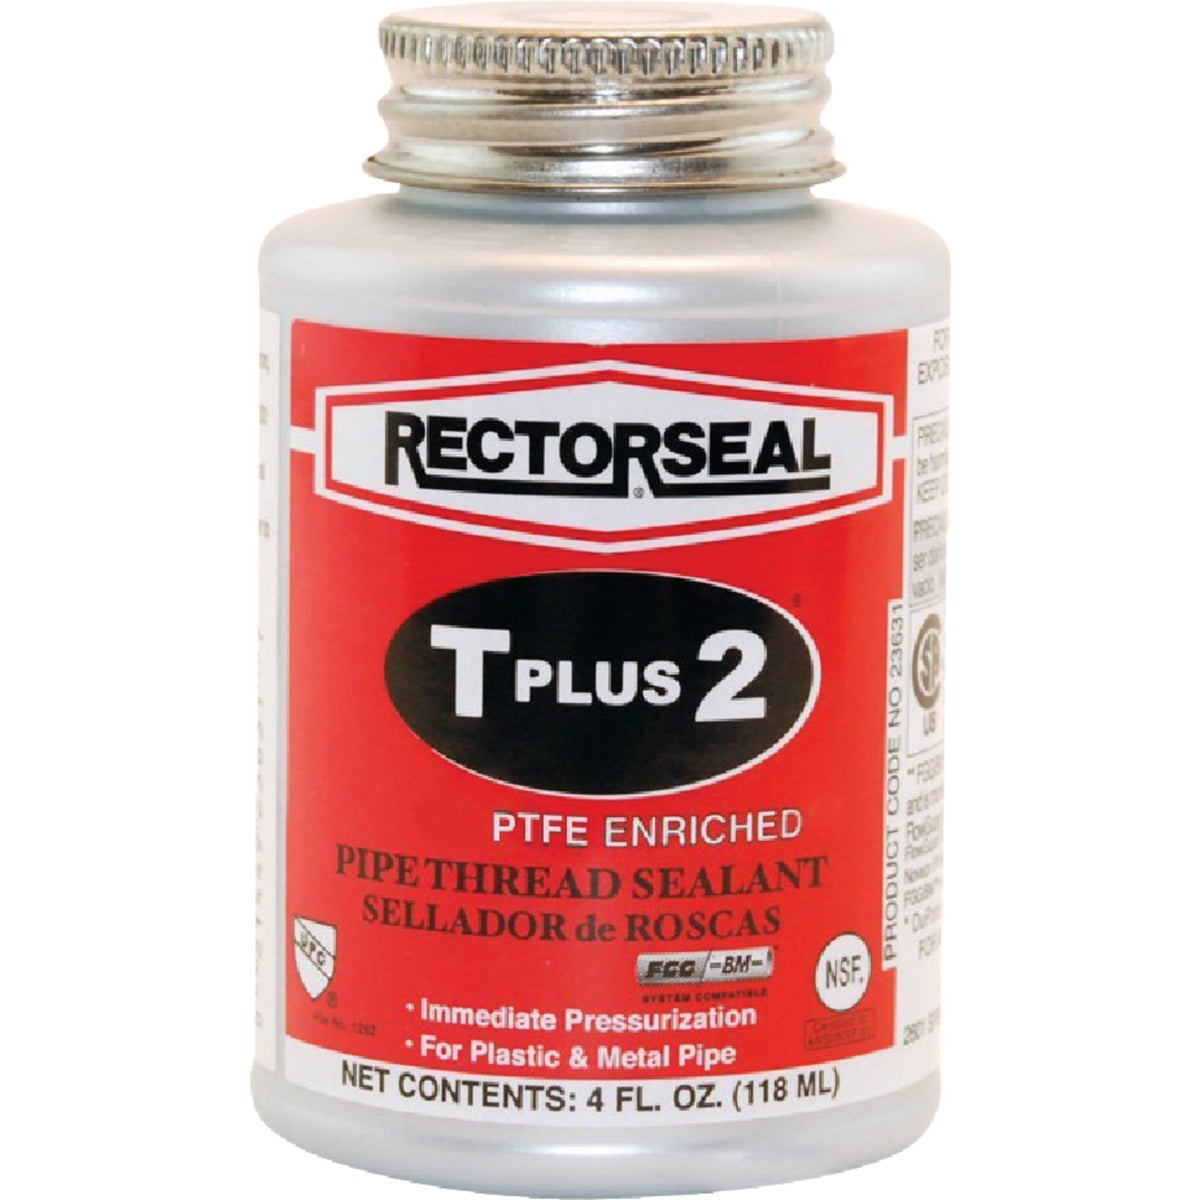 1/4PT PIPE THRD SEALANT - 23631 by Rectorseal Corp